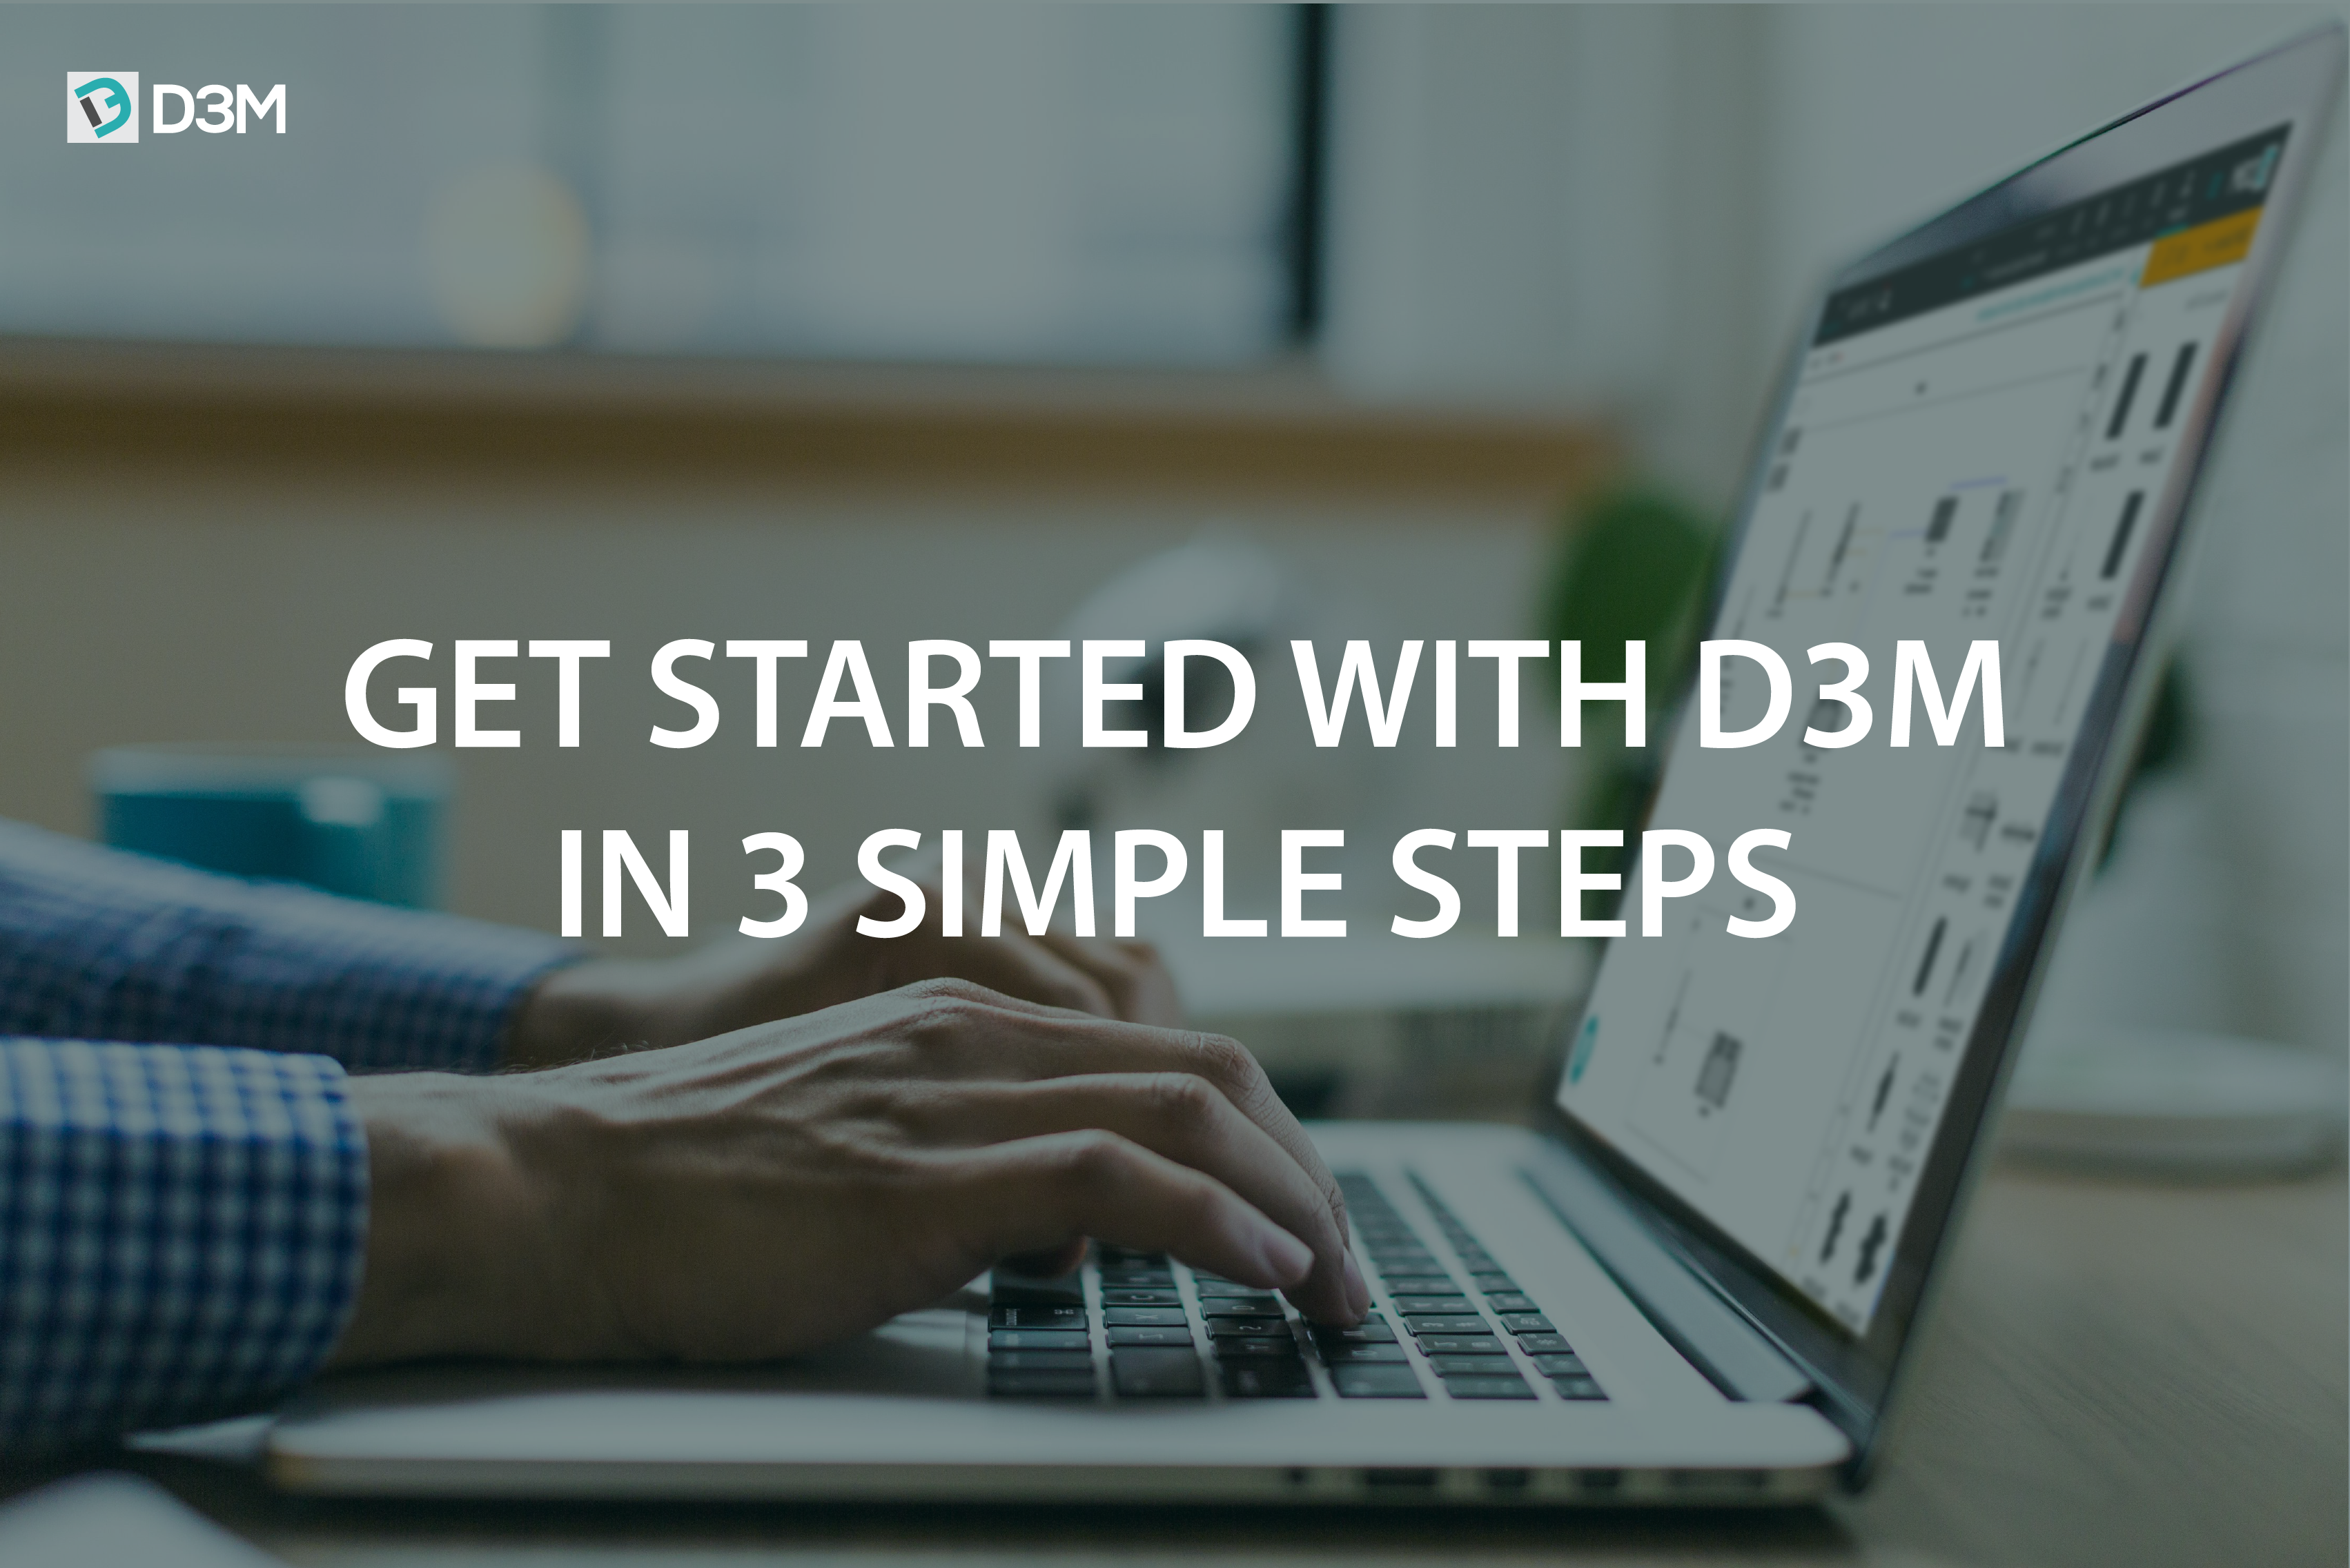 Getting Started with D3M is as Easy as 1, 2, 3!